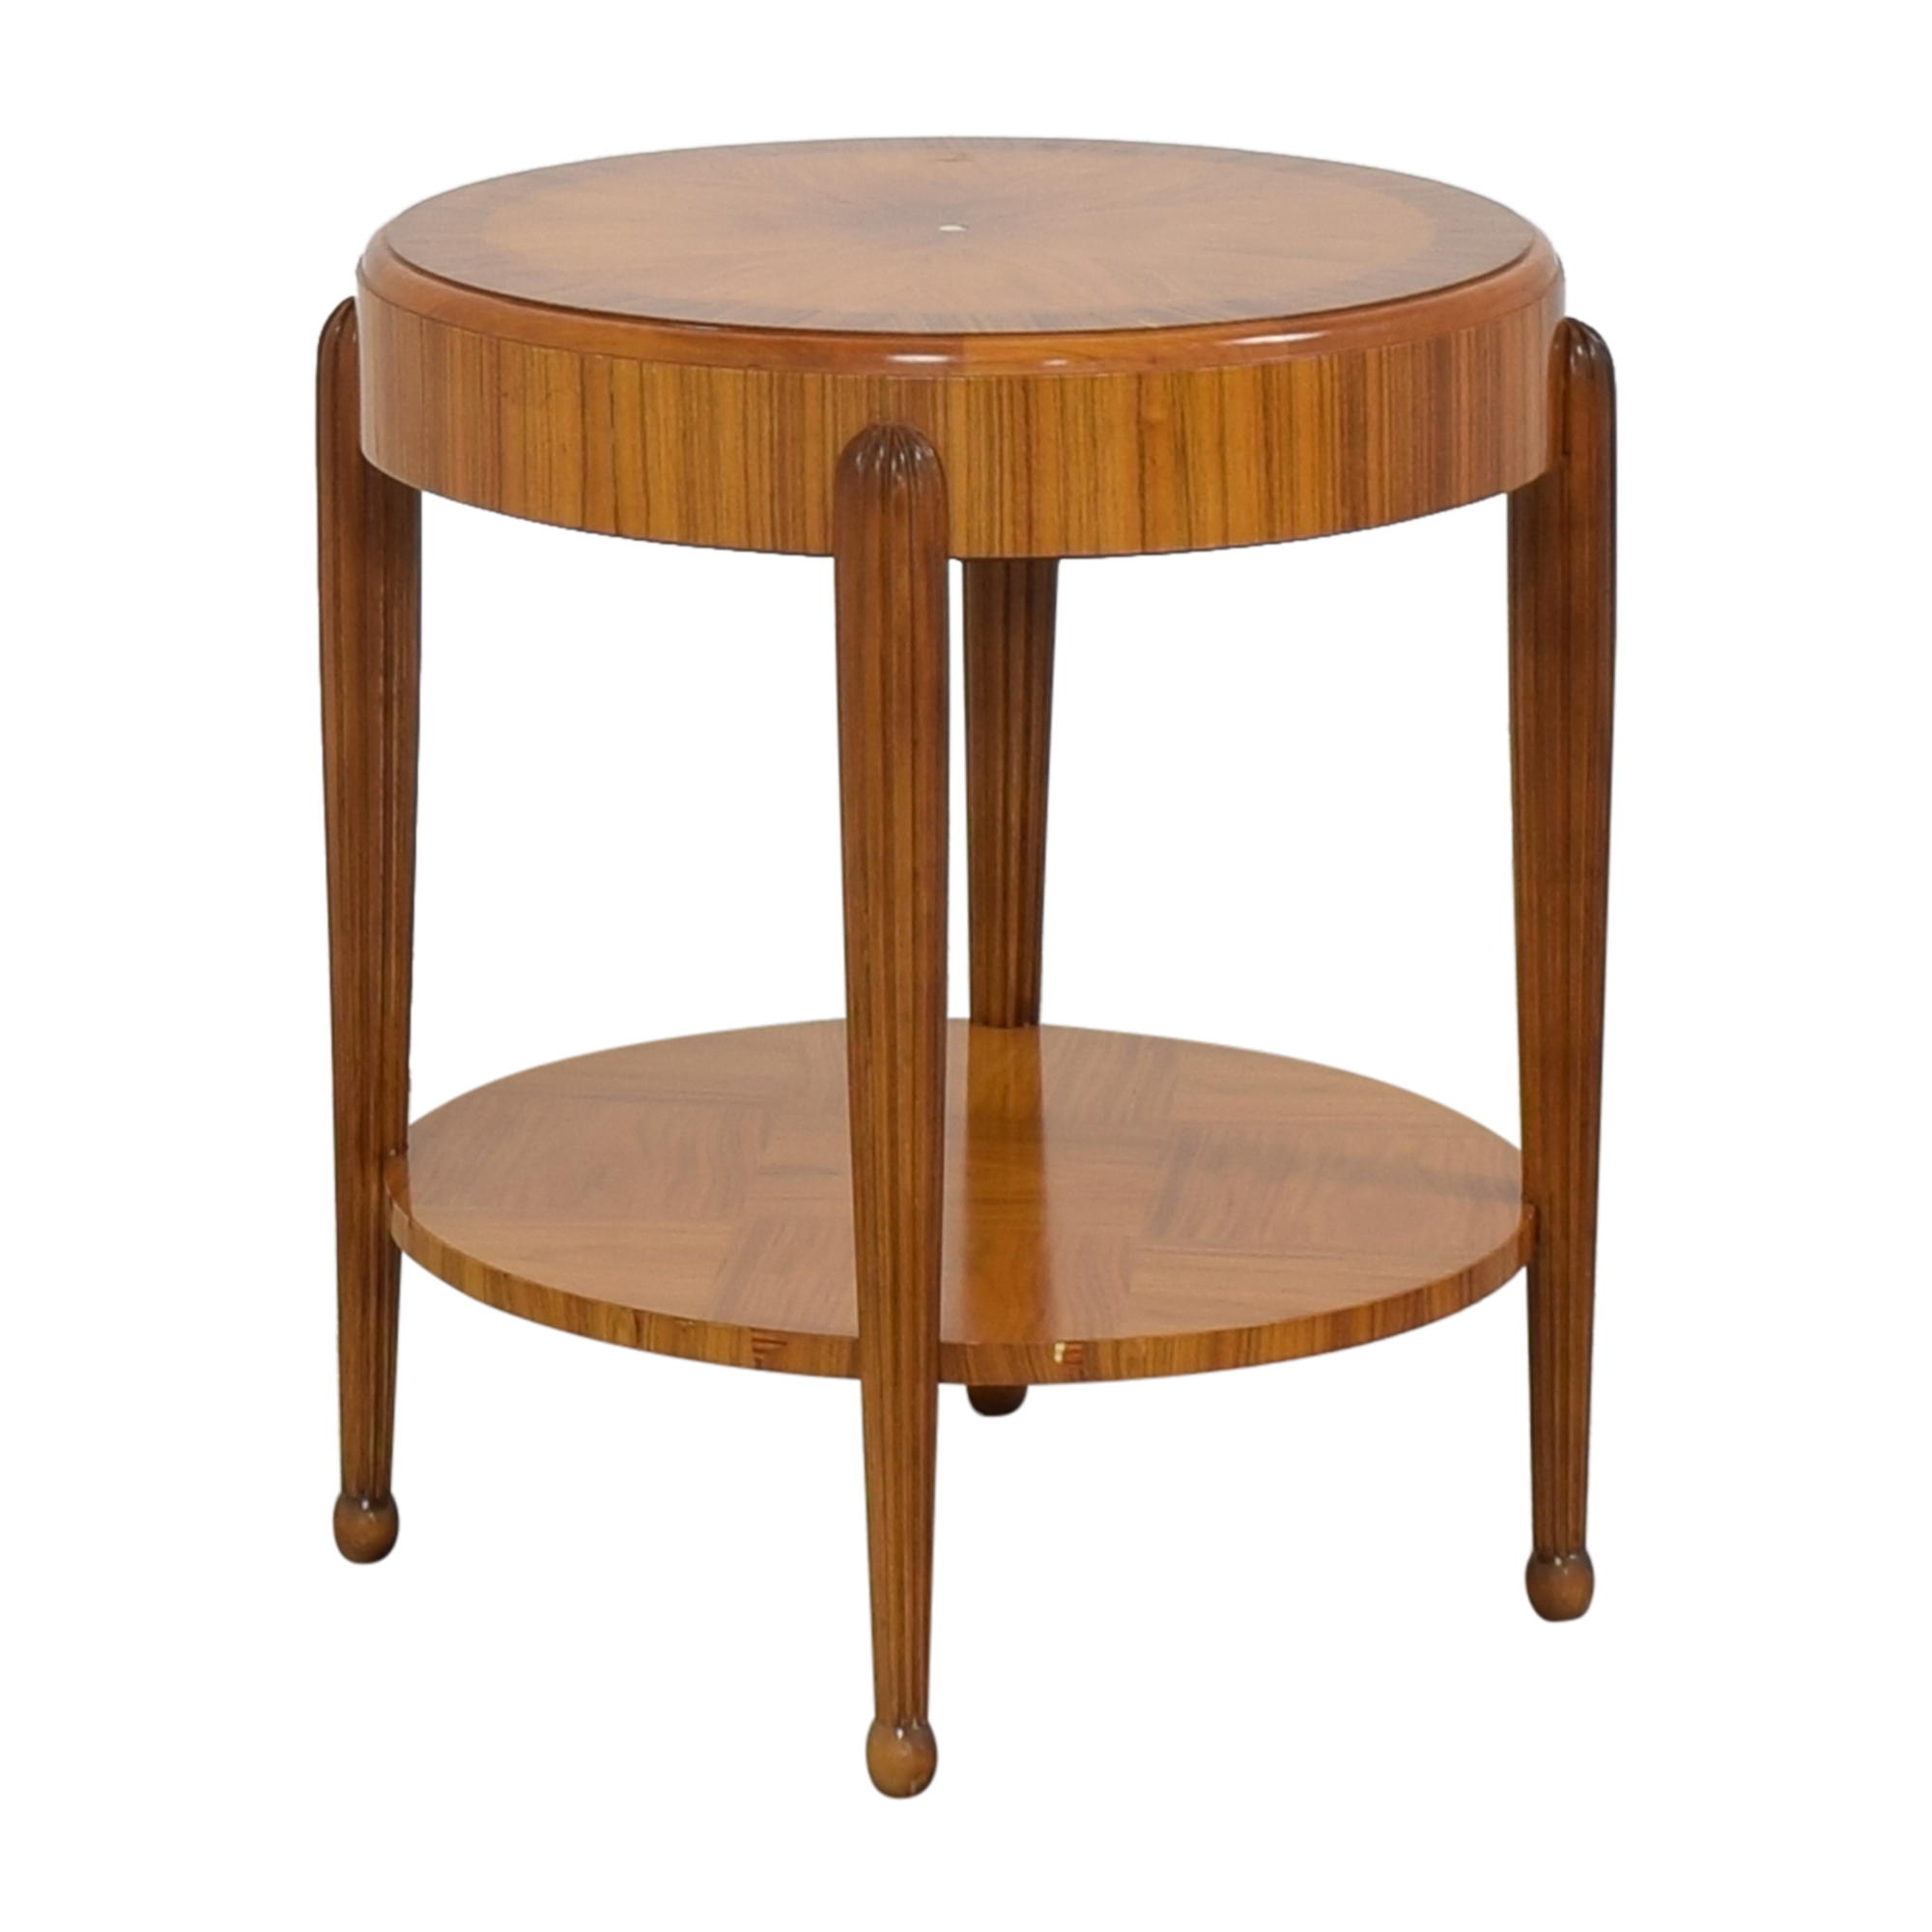 Round Art Deco Side Table Accent Tables